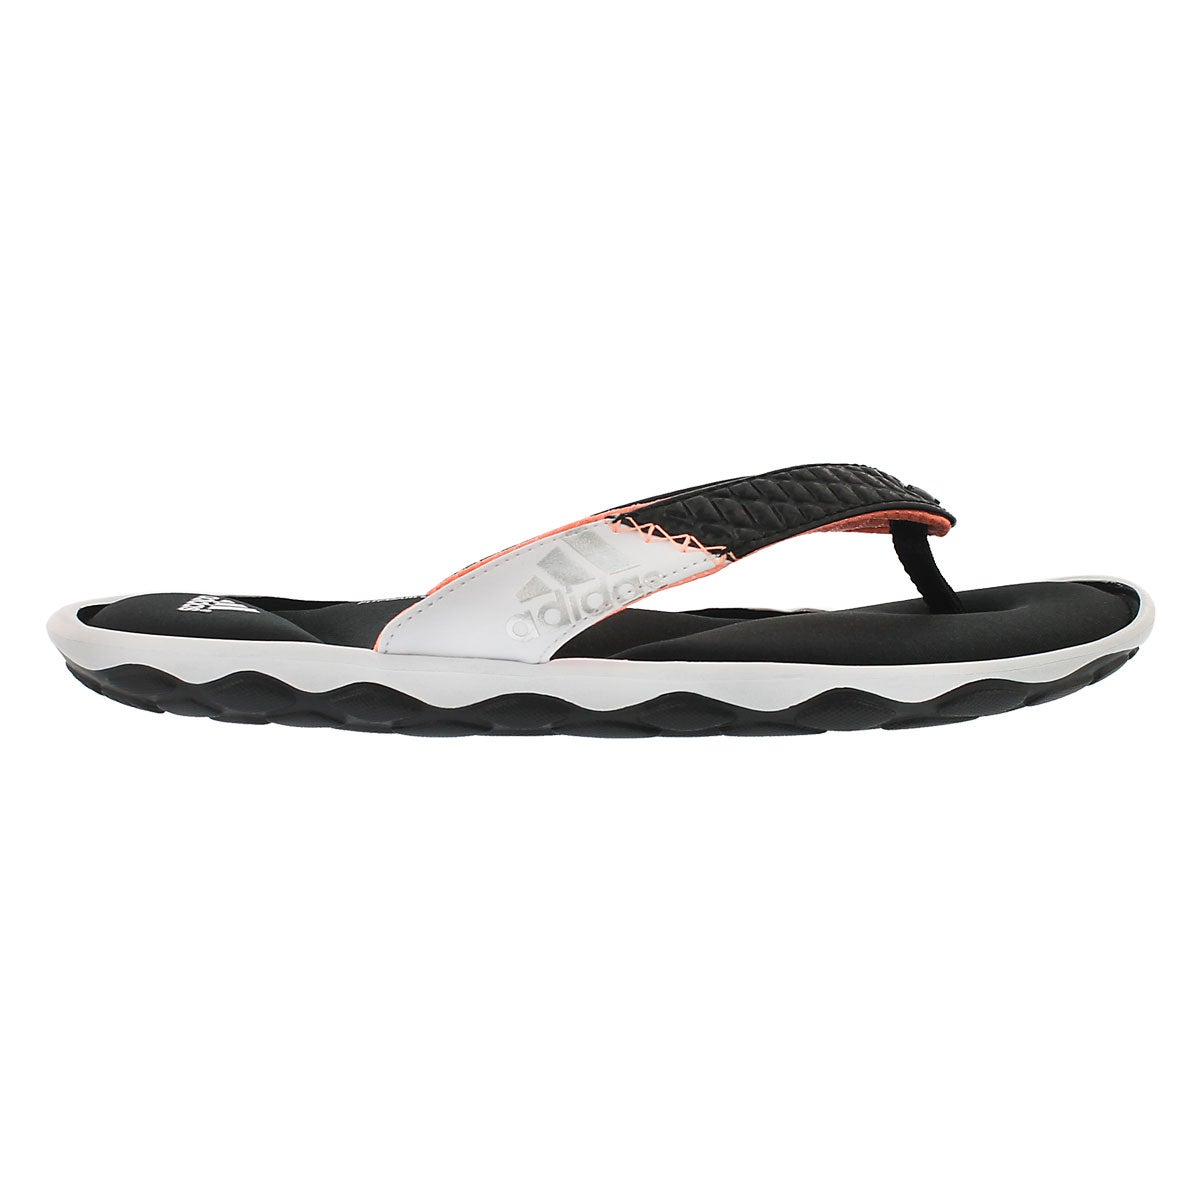 Lds Anyanda Flex Thong black sandal